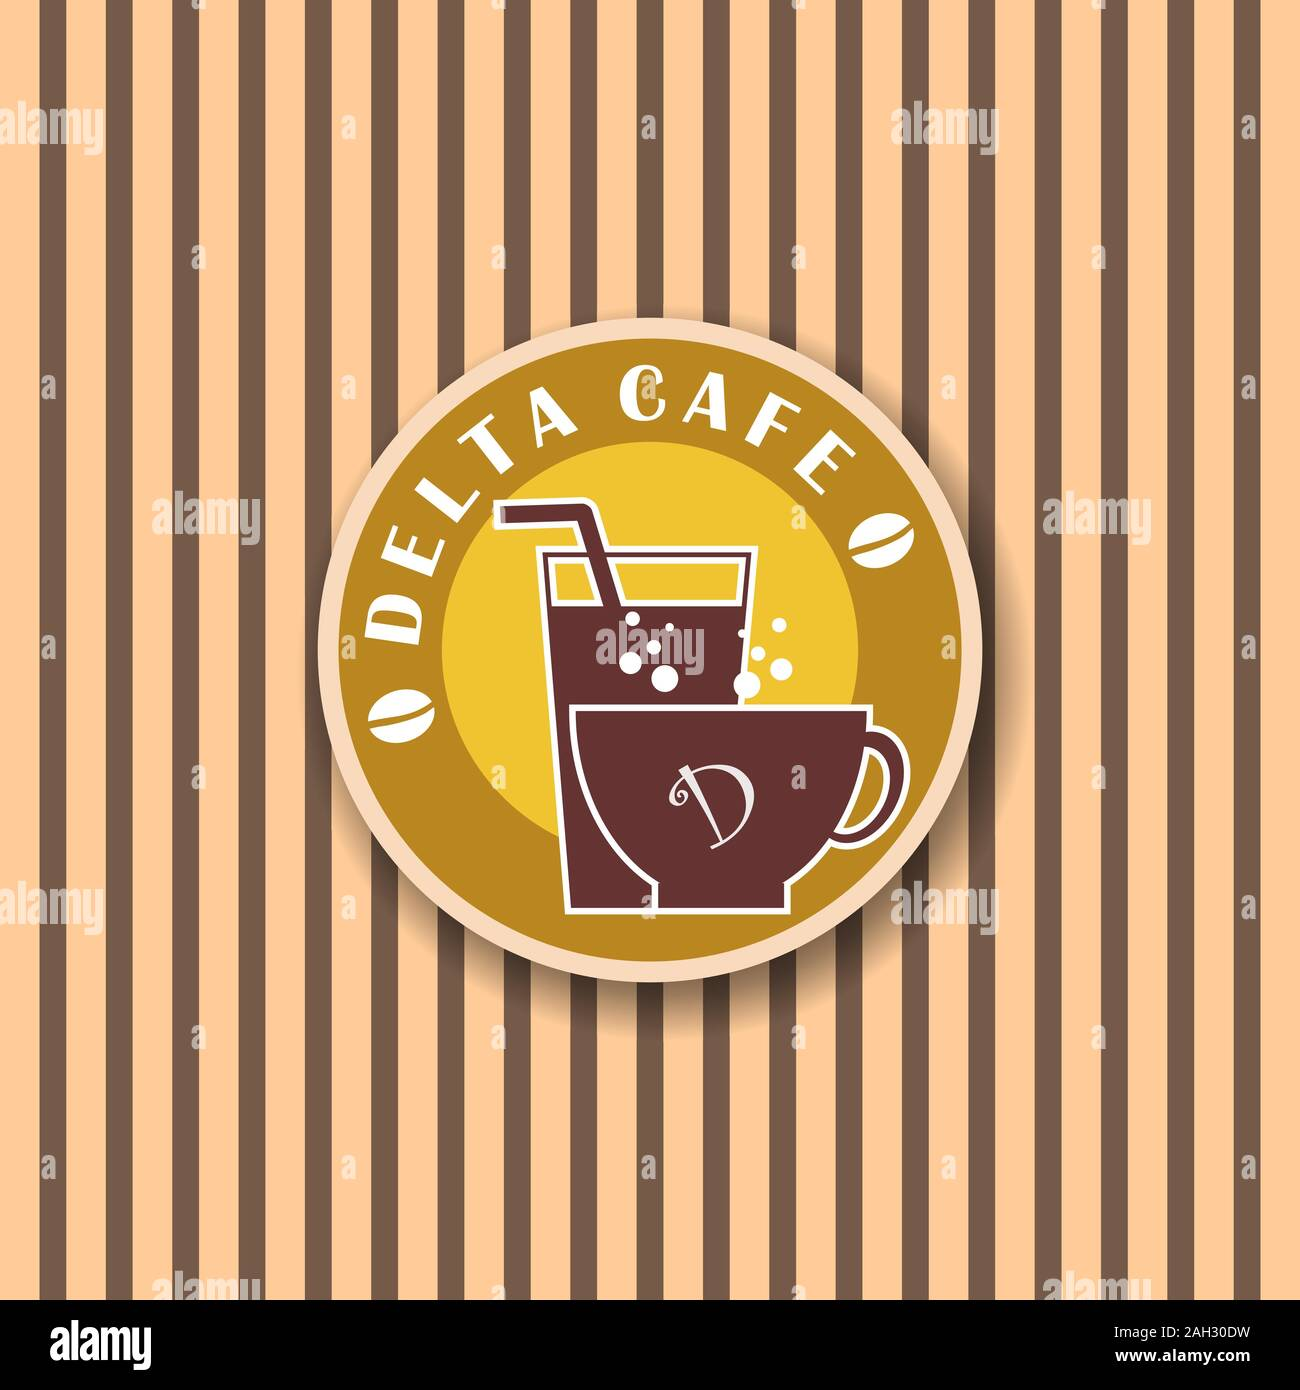 Delta Cafe Logo Design Concept Logo Template For Cafe Or Coffee Shop Food Drink Juice Cups Icon Brown Ellipse Shape Stock Vector Image Art Alamy